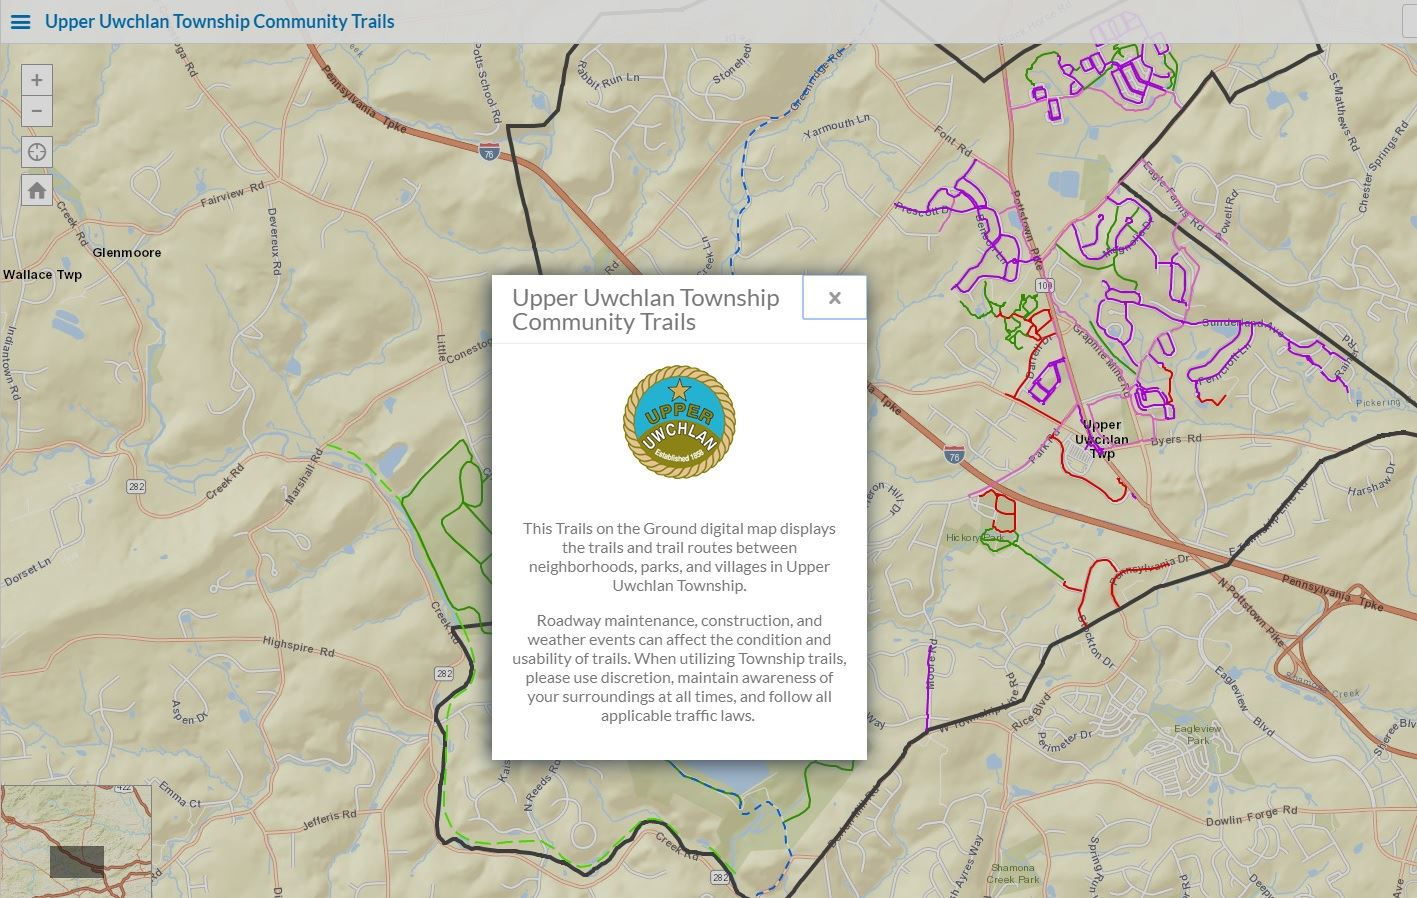 Click here to access a digital, interactive map of the Upper Uwchlan Community Trails Network Opens in new window